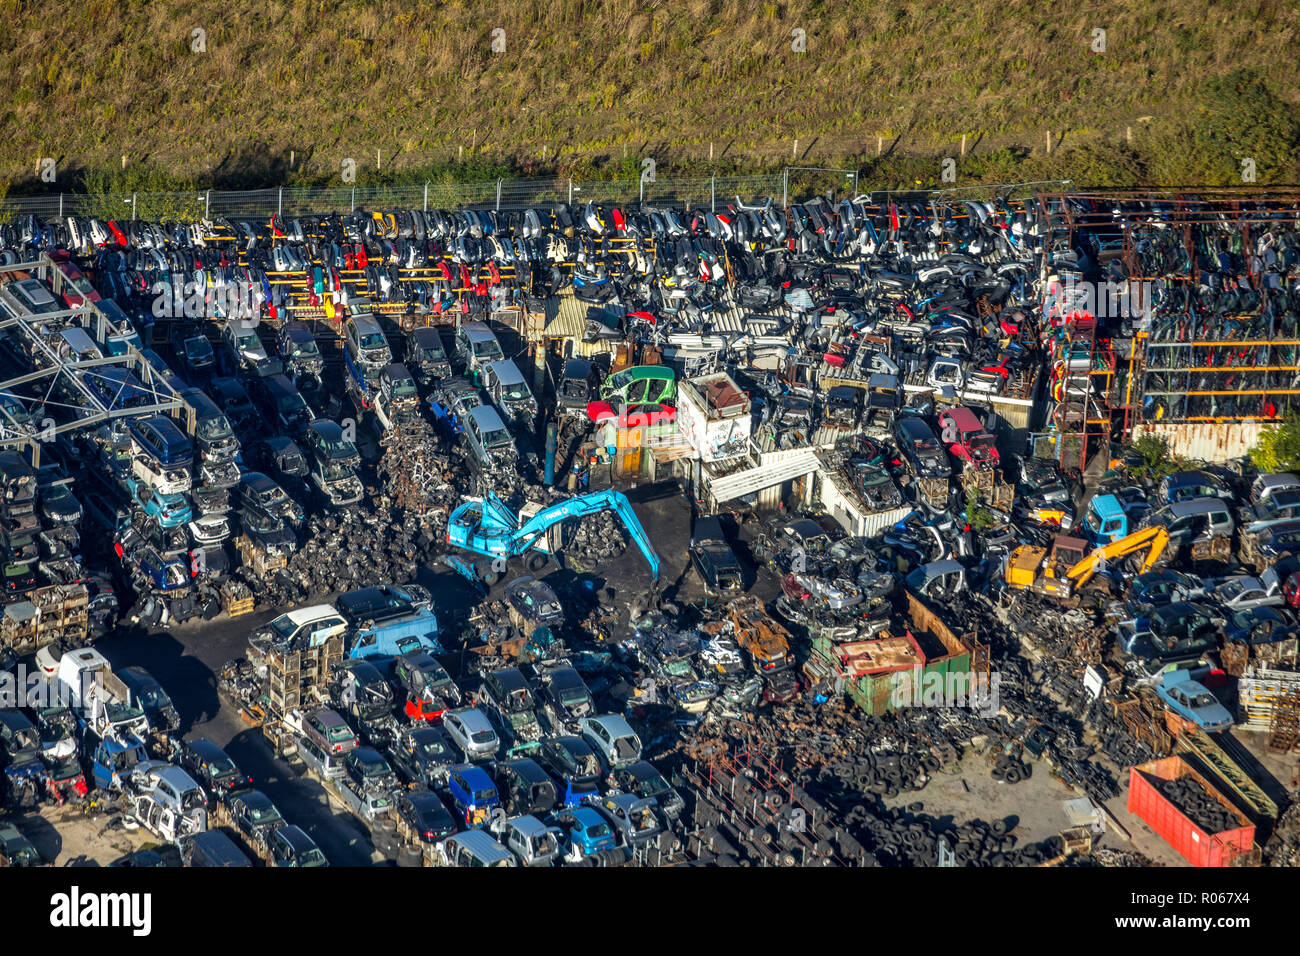 Aerial photograph, spent junkyard, strothmann auto parts GmbH & Co. KG, car recycling, fire ruin, car wrecks, Schachtkuhle, Unna, Ruhrgebiet, North Rh - Stock Image